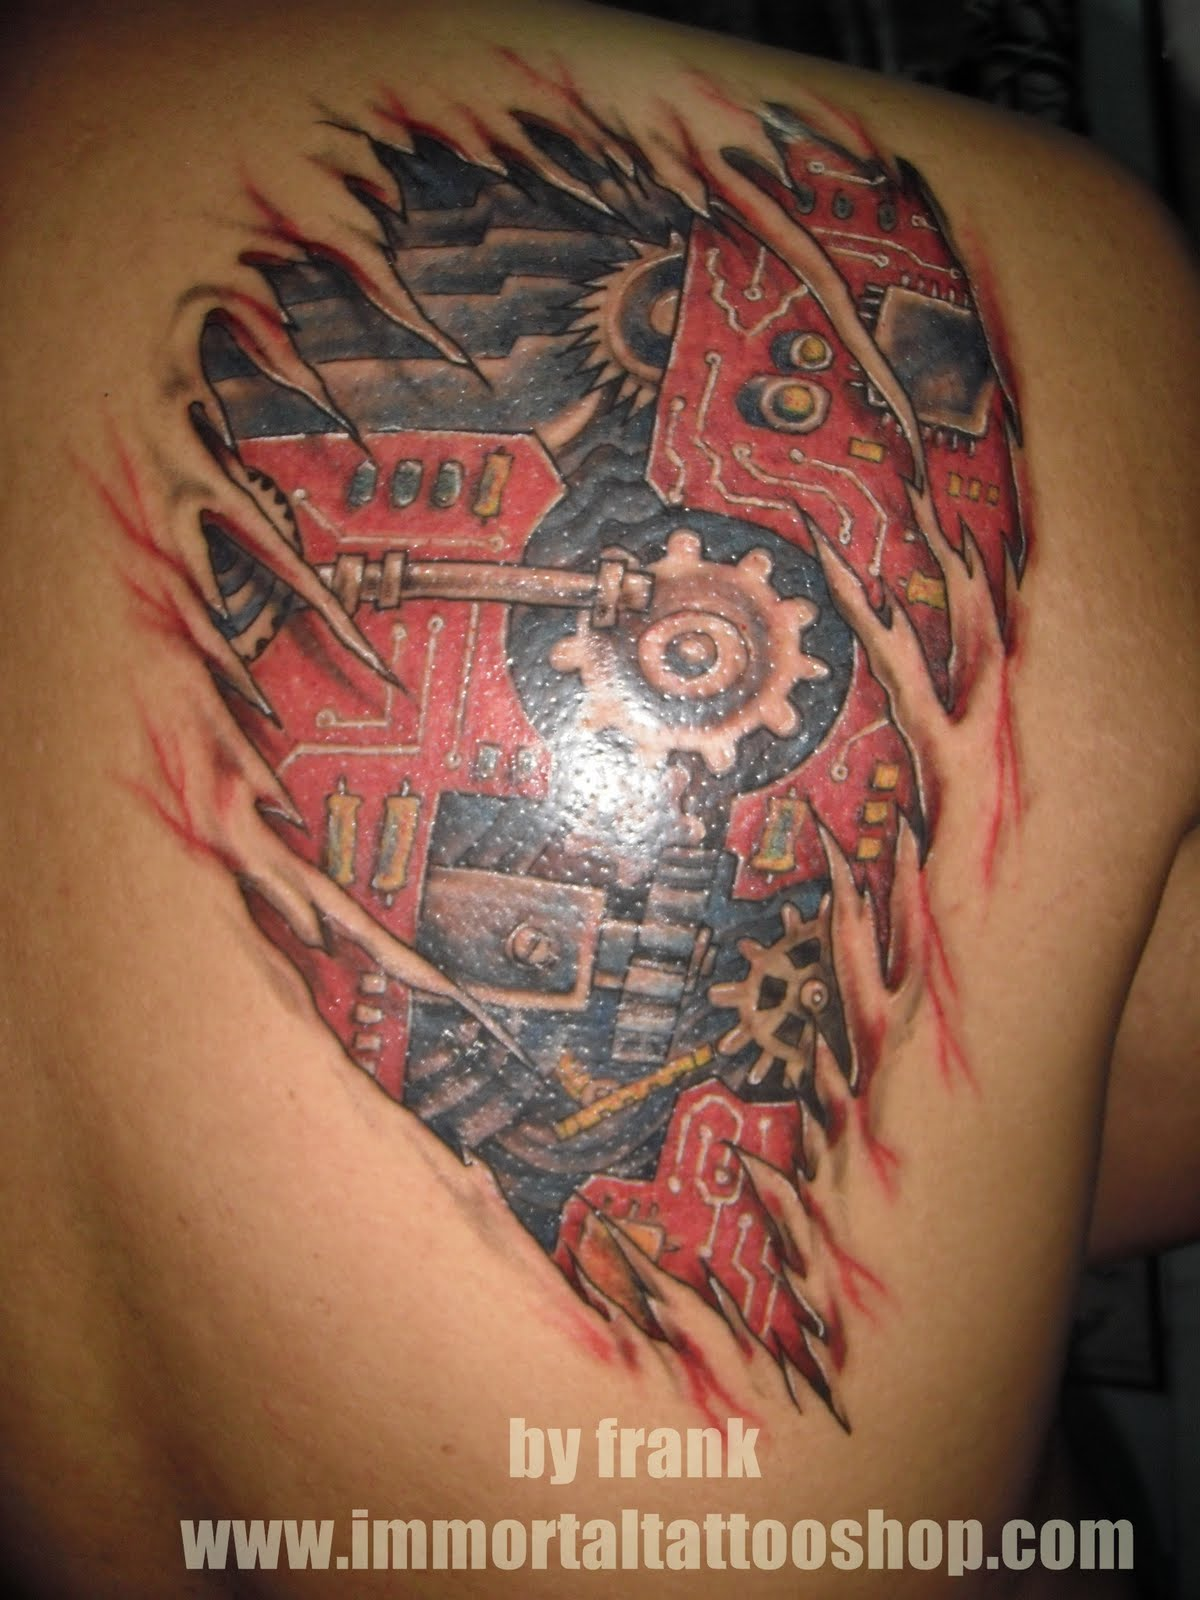 3D TATTOO by frank Multiply